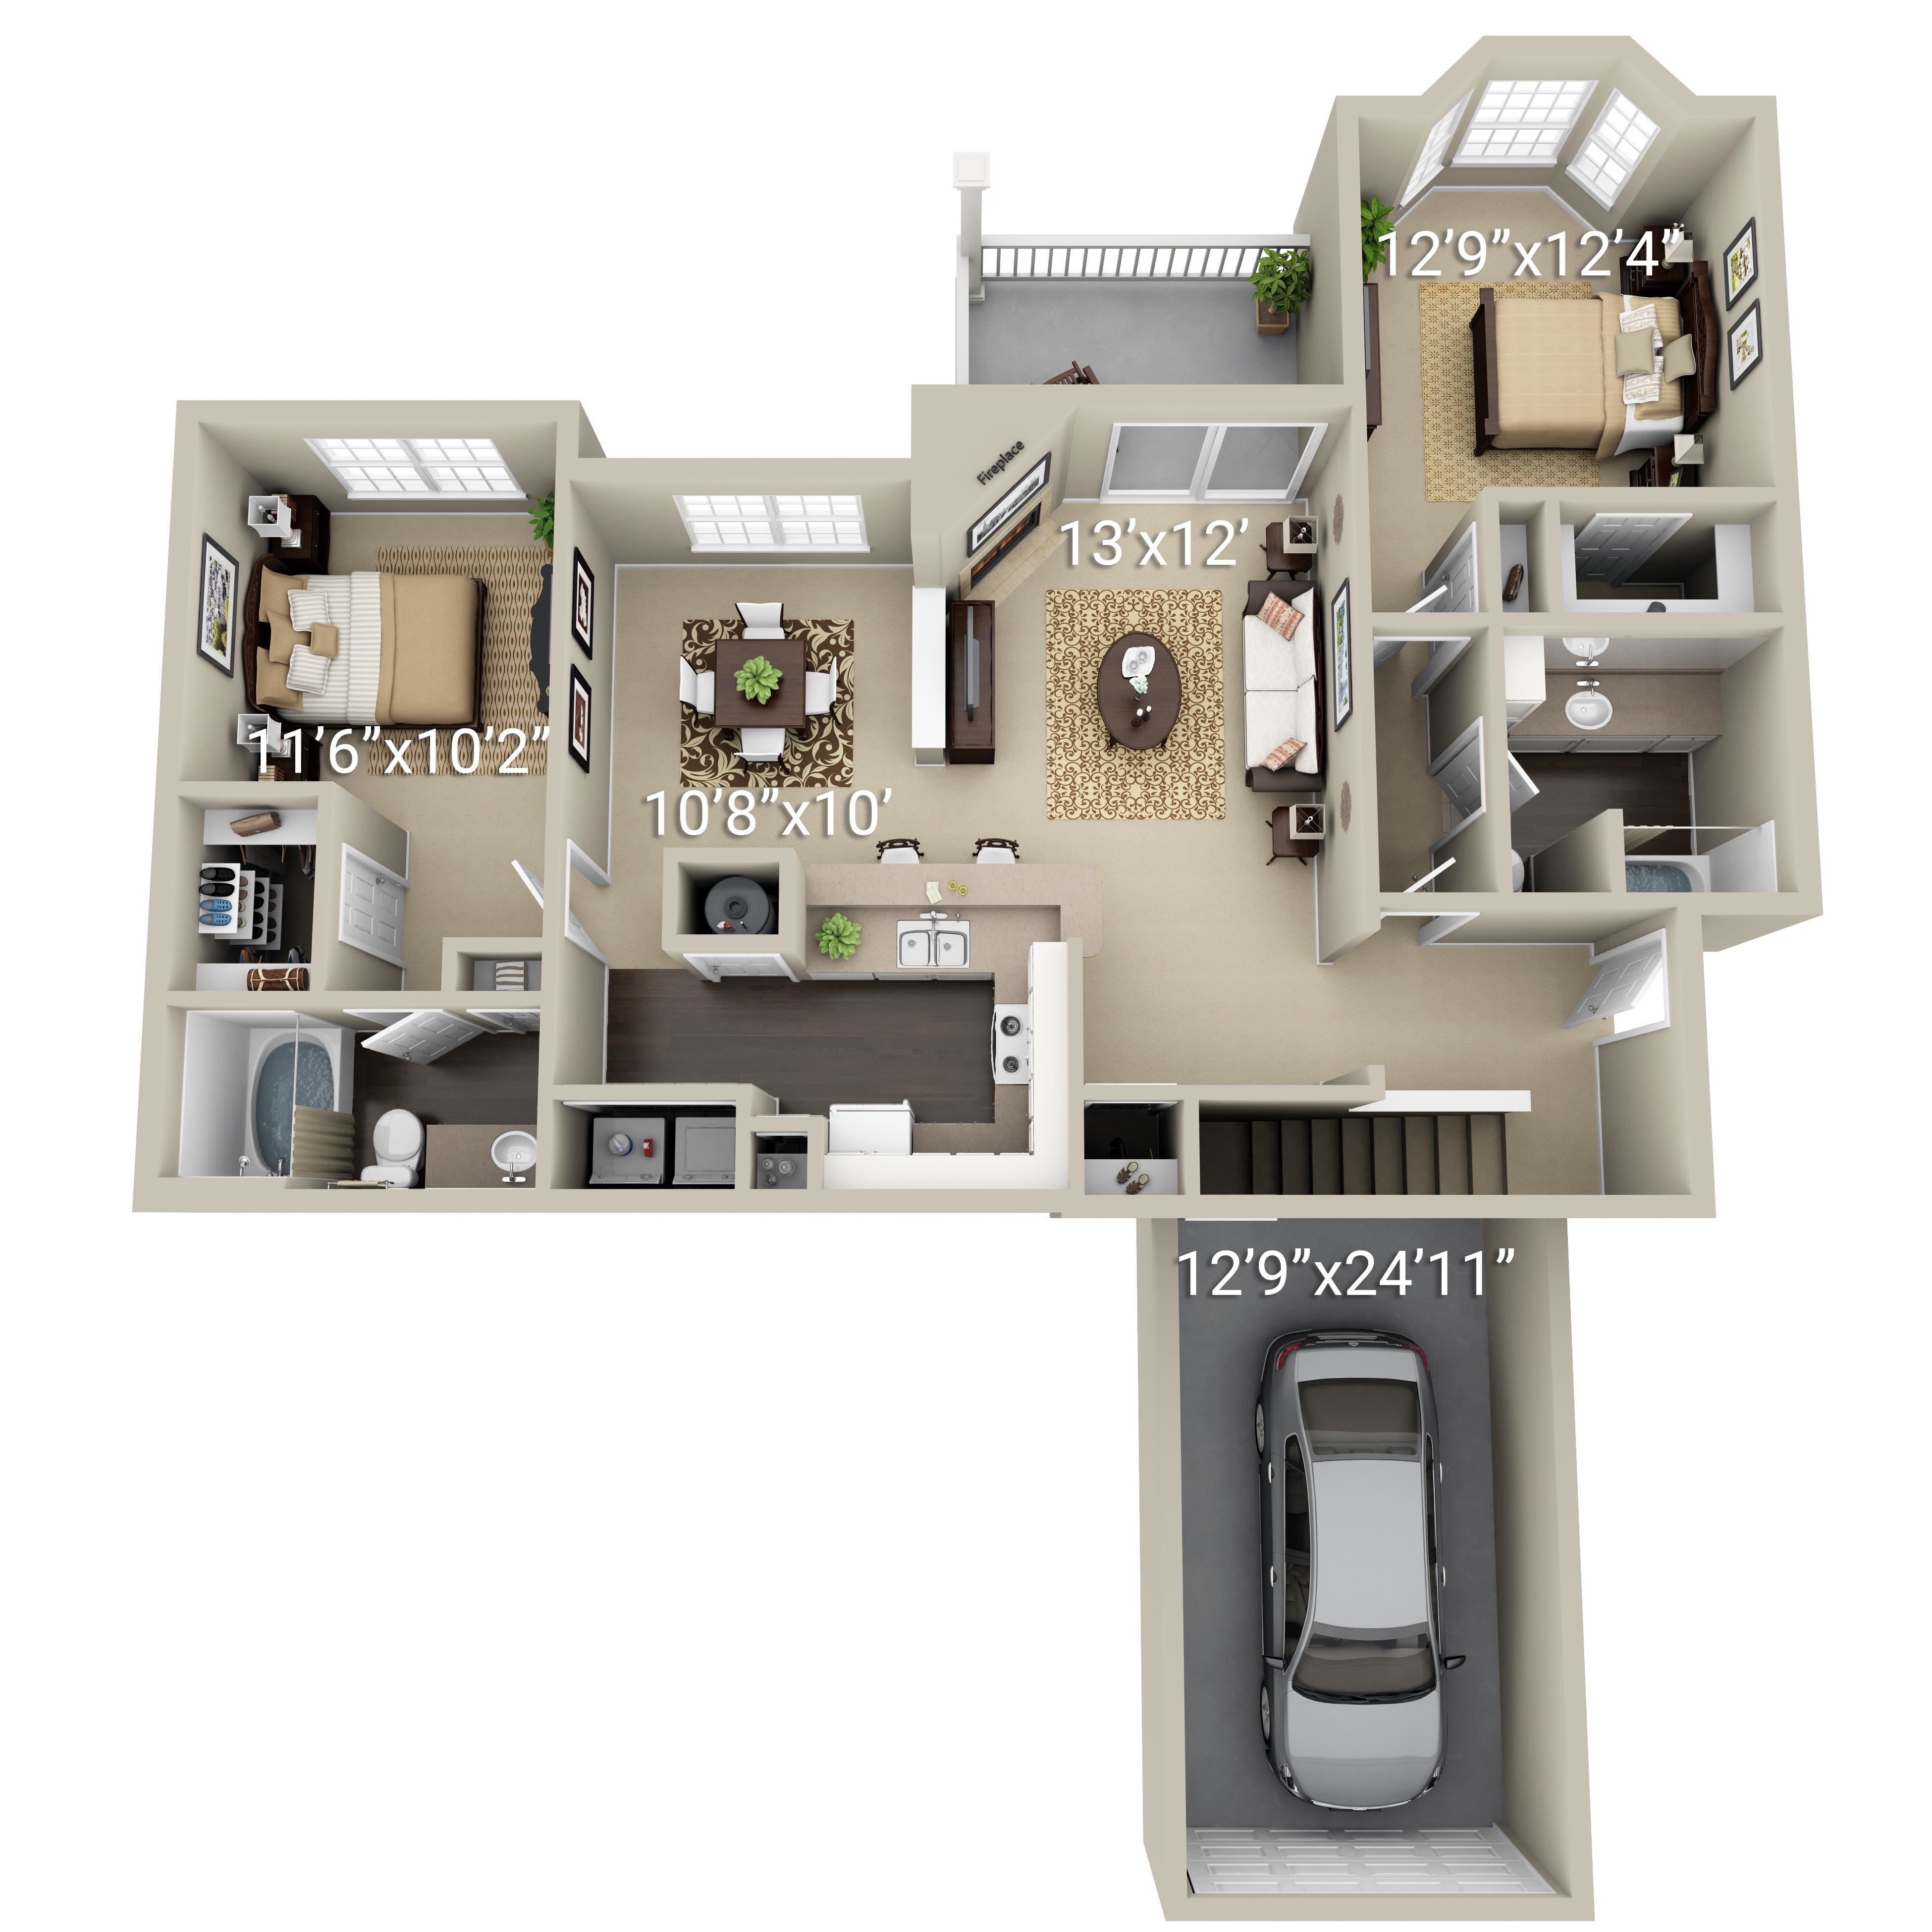 2 Bedroom 2 Bath (2G)